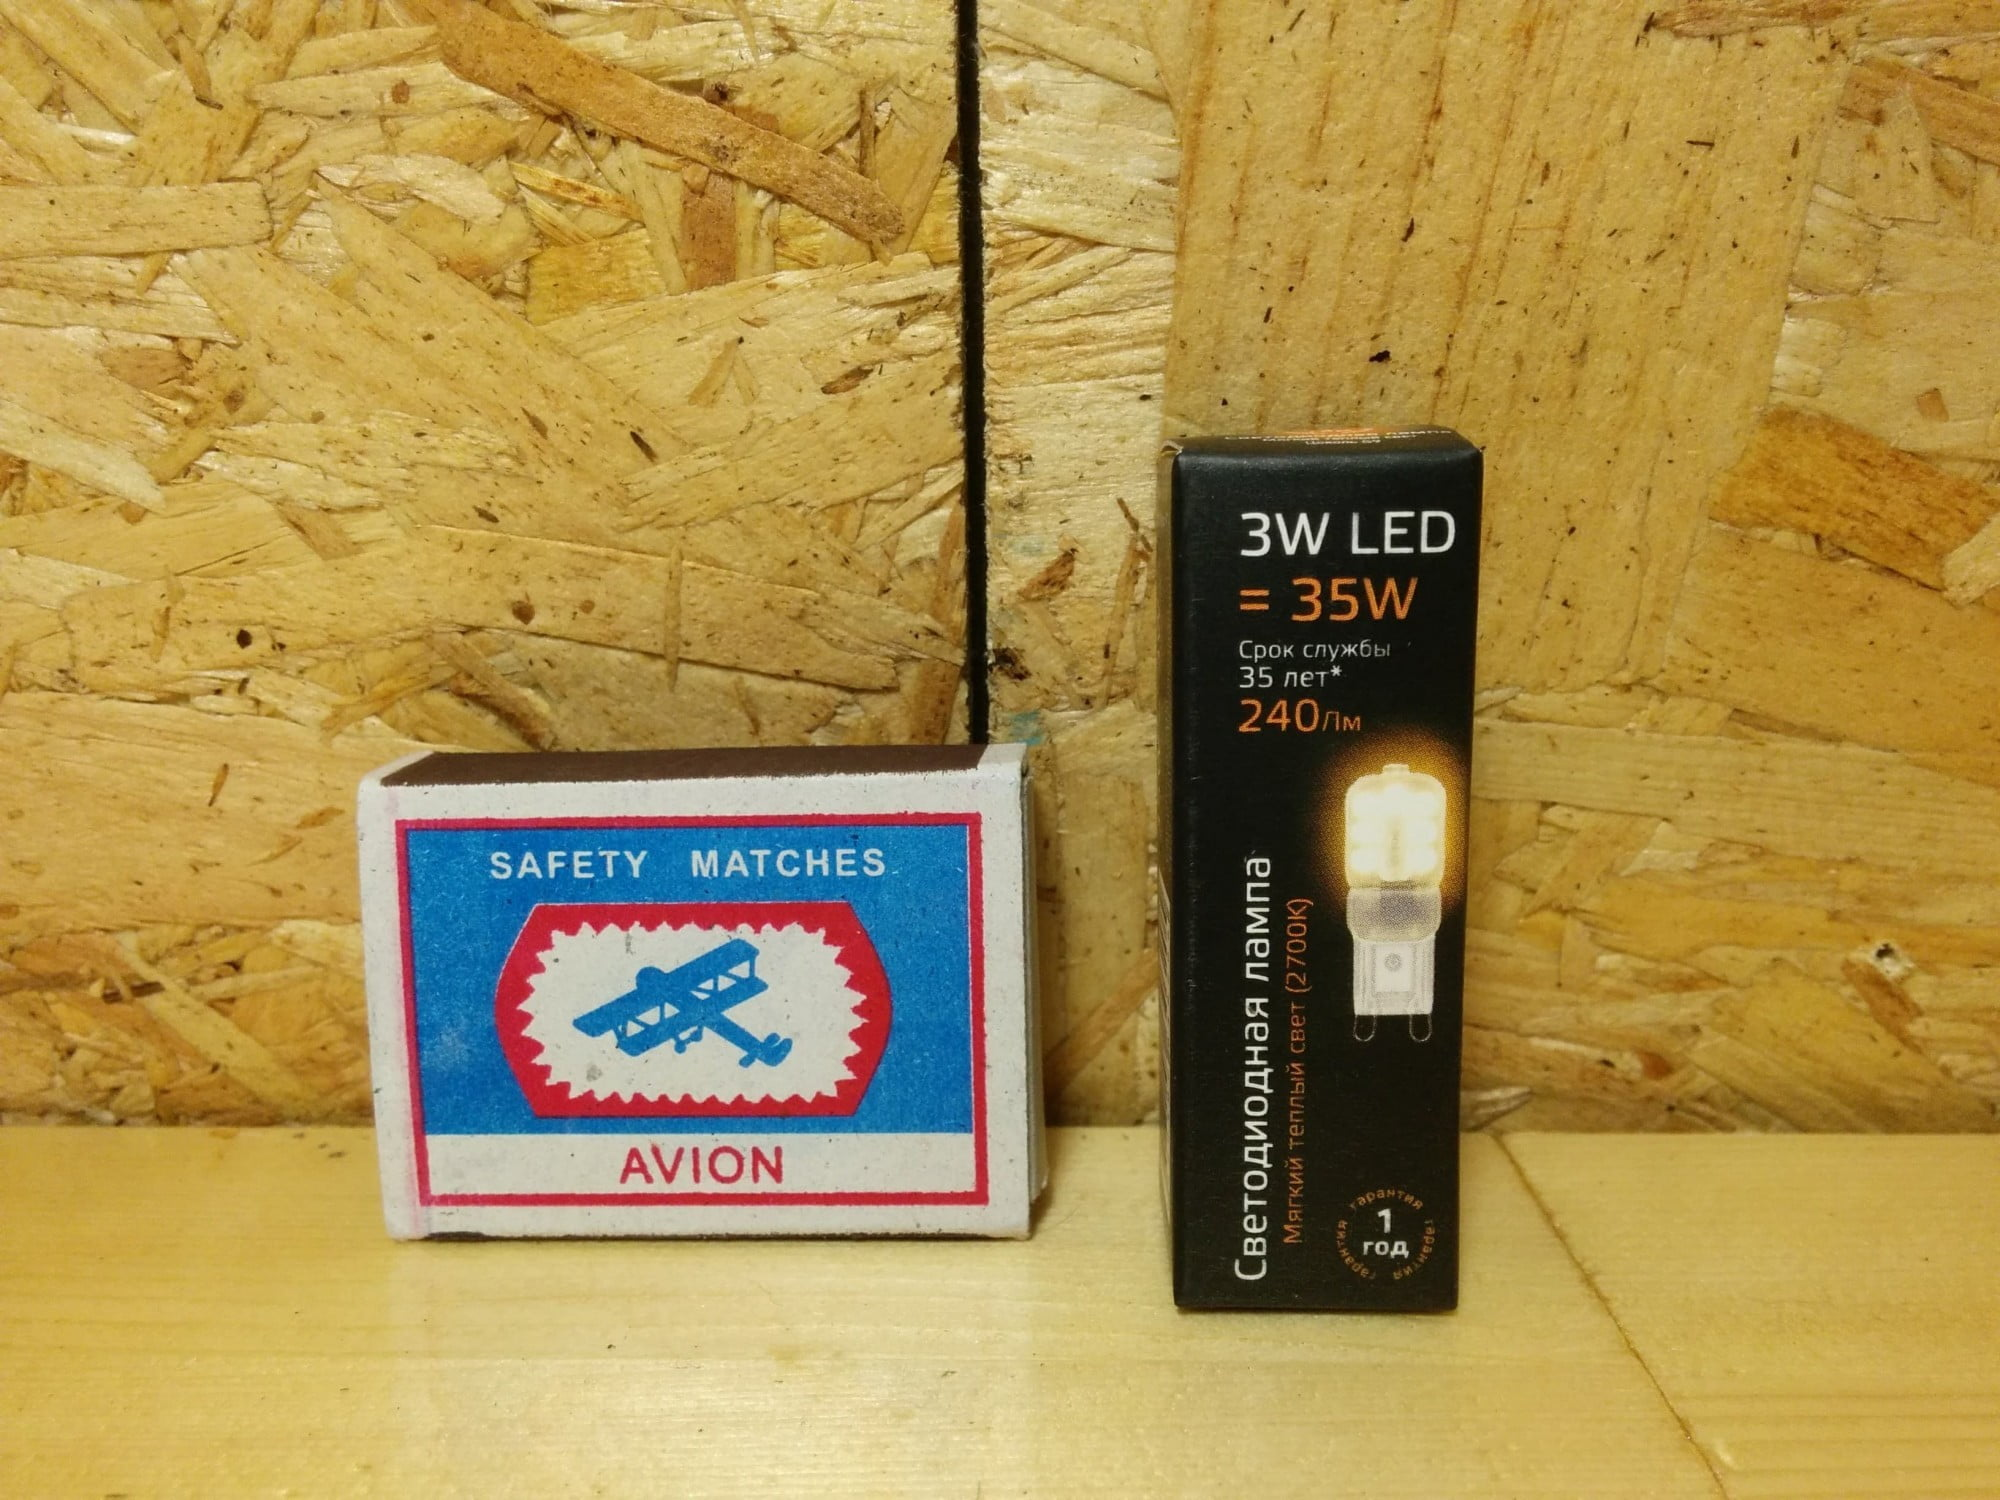 Gauss LED G9 AC220-240V 3W 2700K упаковка